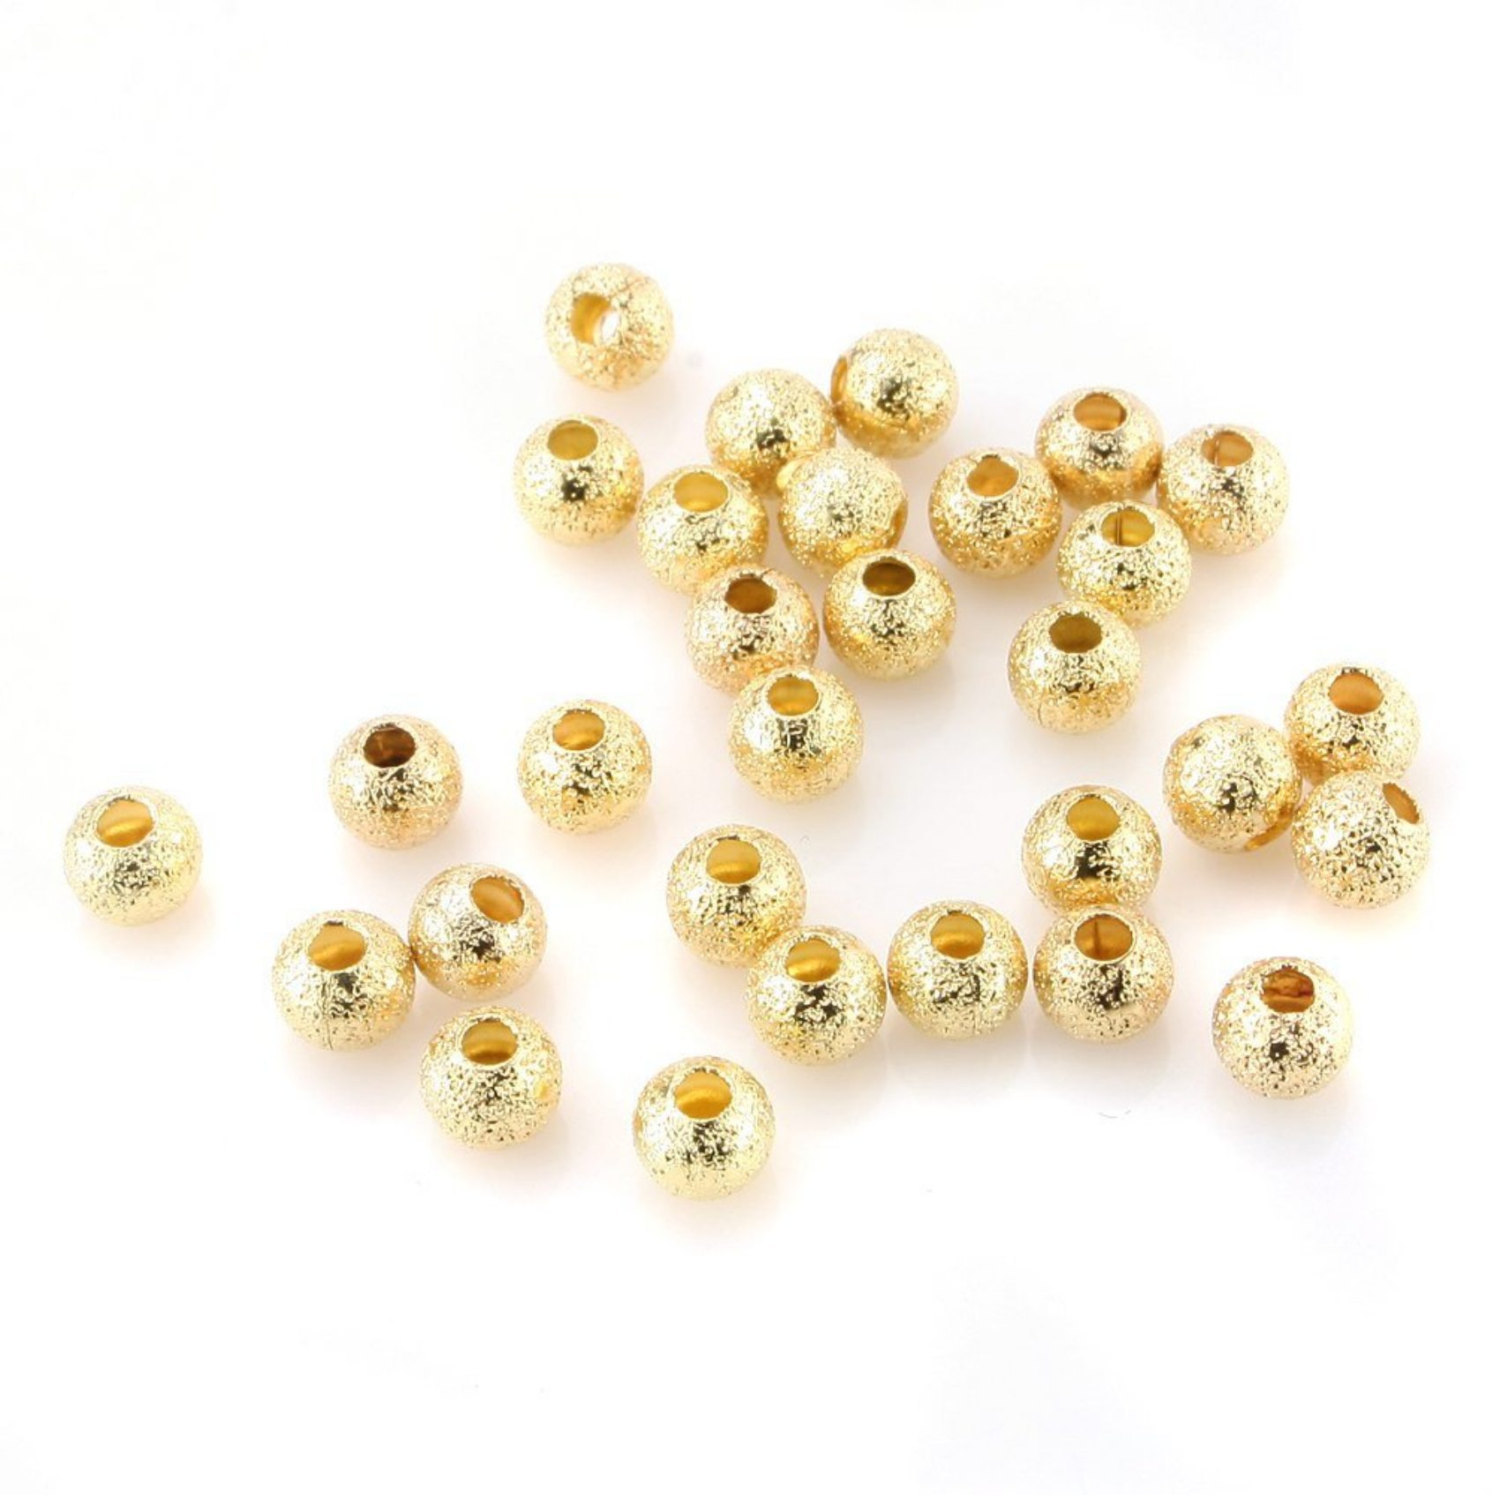 200 pcs Gold Plated Smooth Beads Stardust Sparkle Round Fashion Beads: Size 4mm,